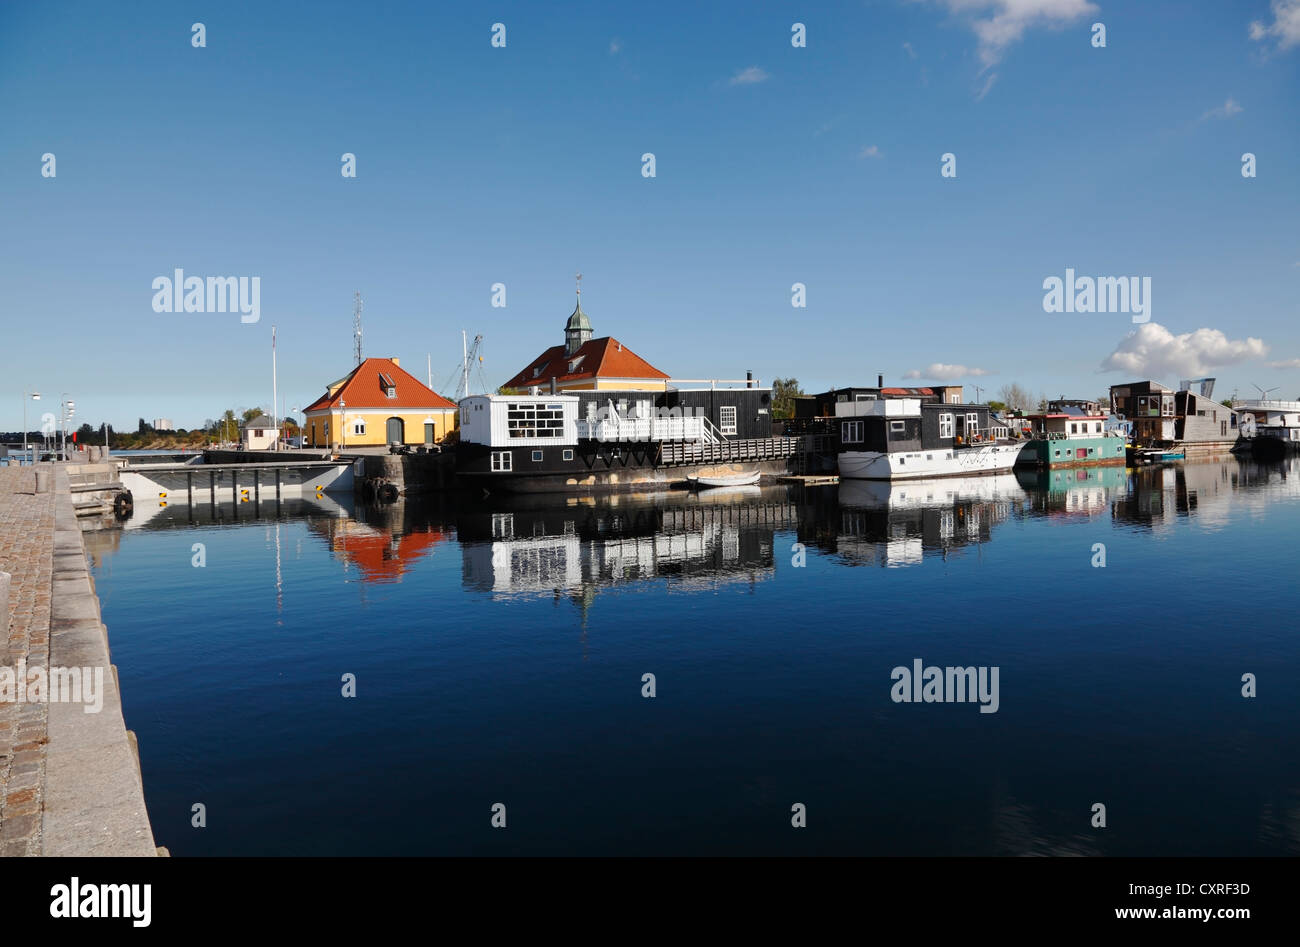 The lock in Sydhavnen (South Harbour) and moored houseboats in the port of Copenhagen, Denmark. - Stock Image